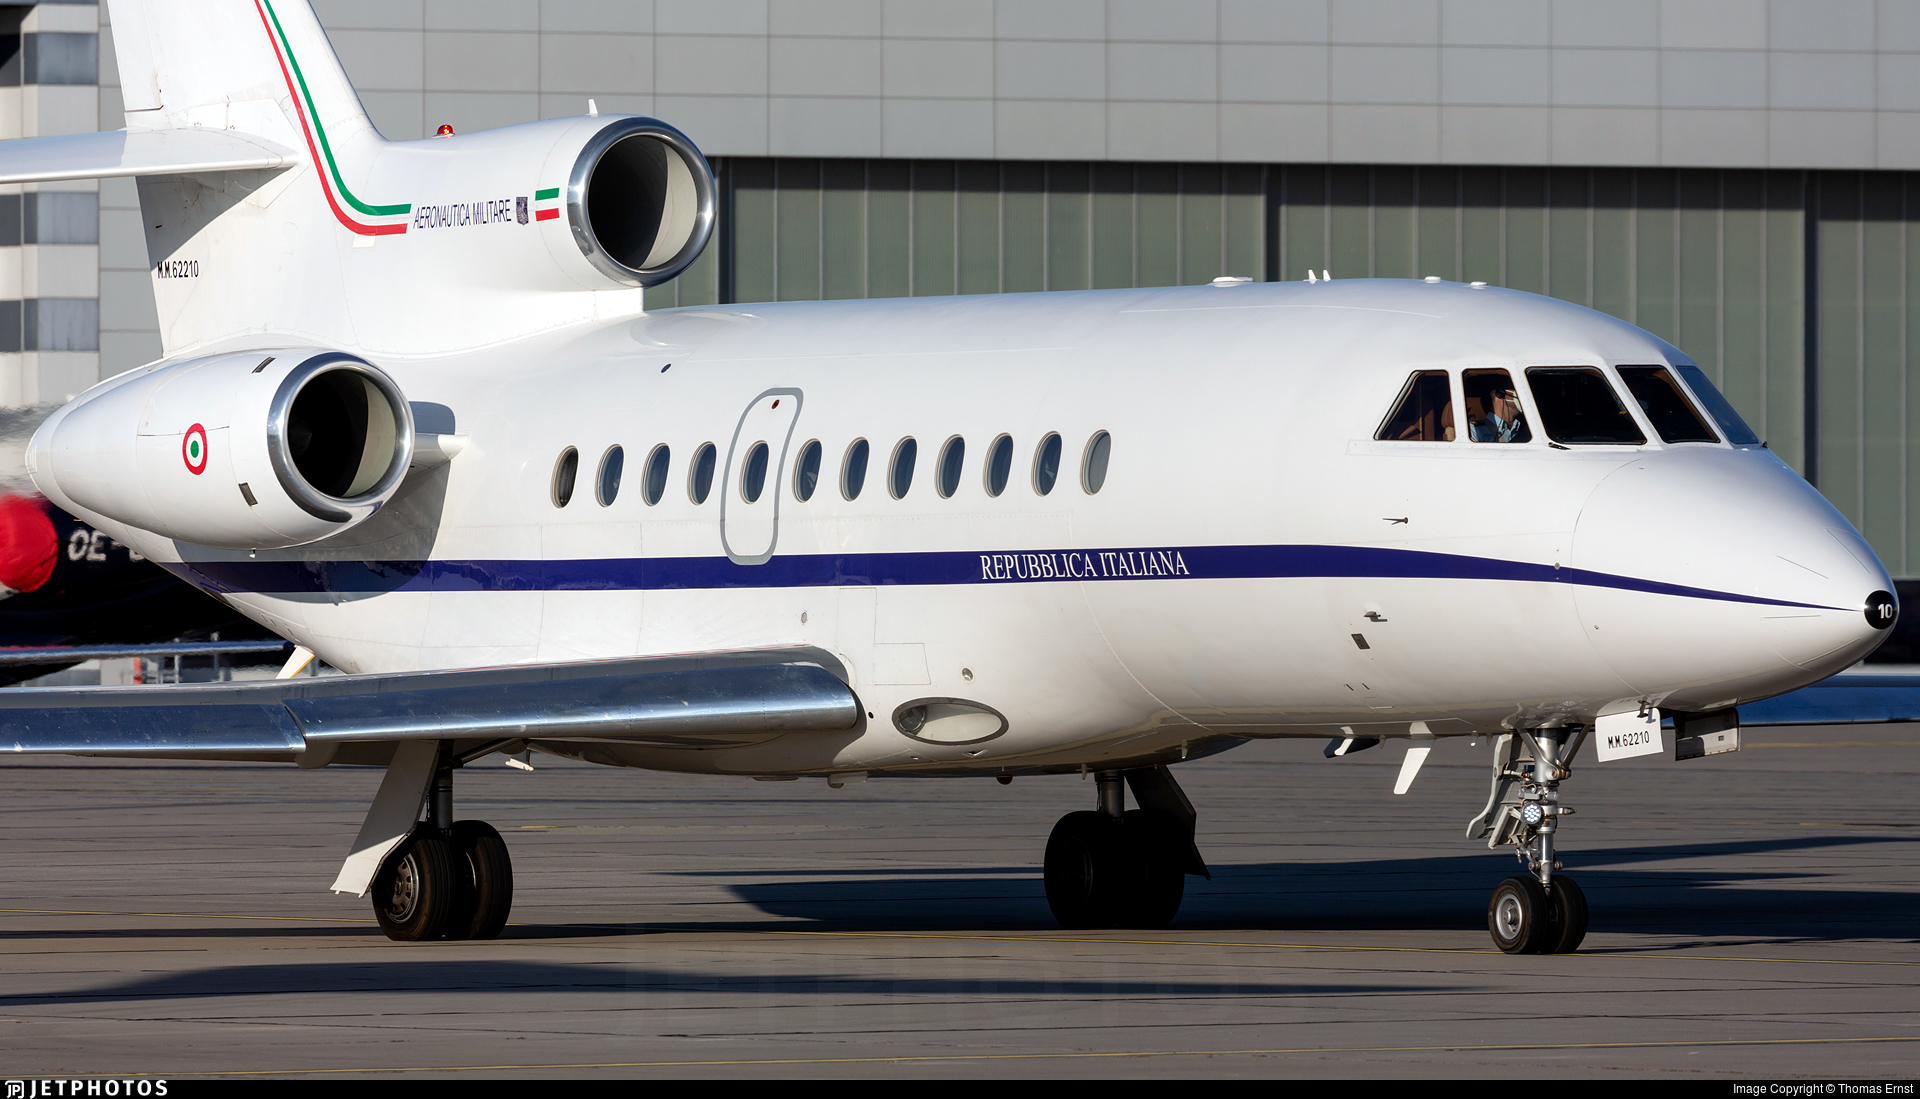 MM62210 - Dassault Falcon 900EX - Italy - Air Force